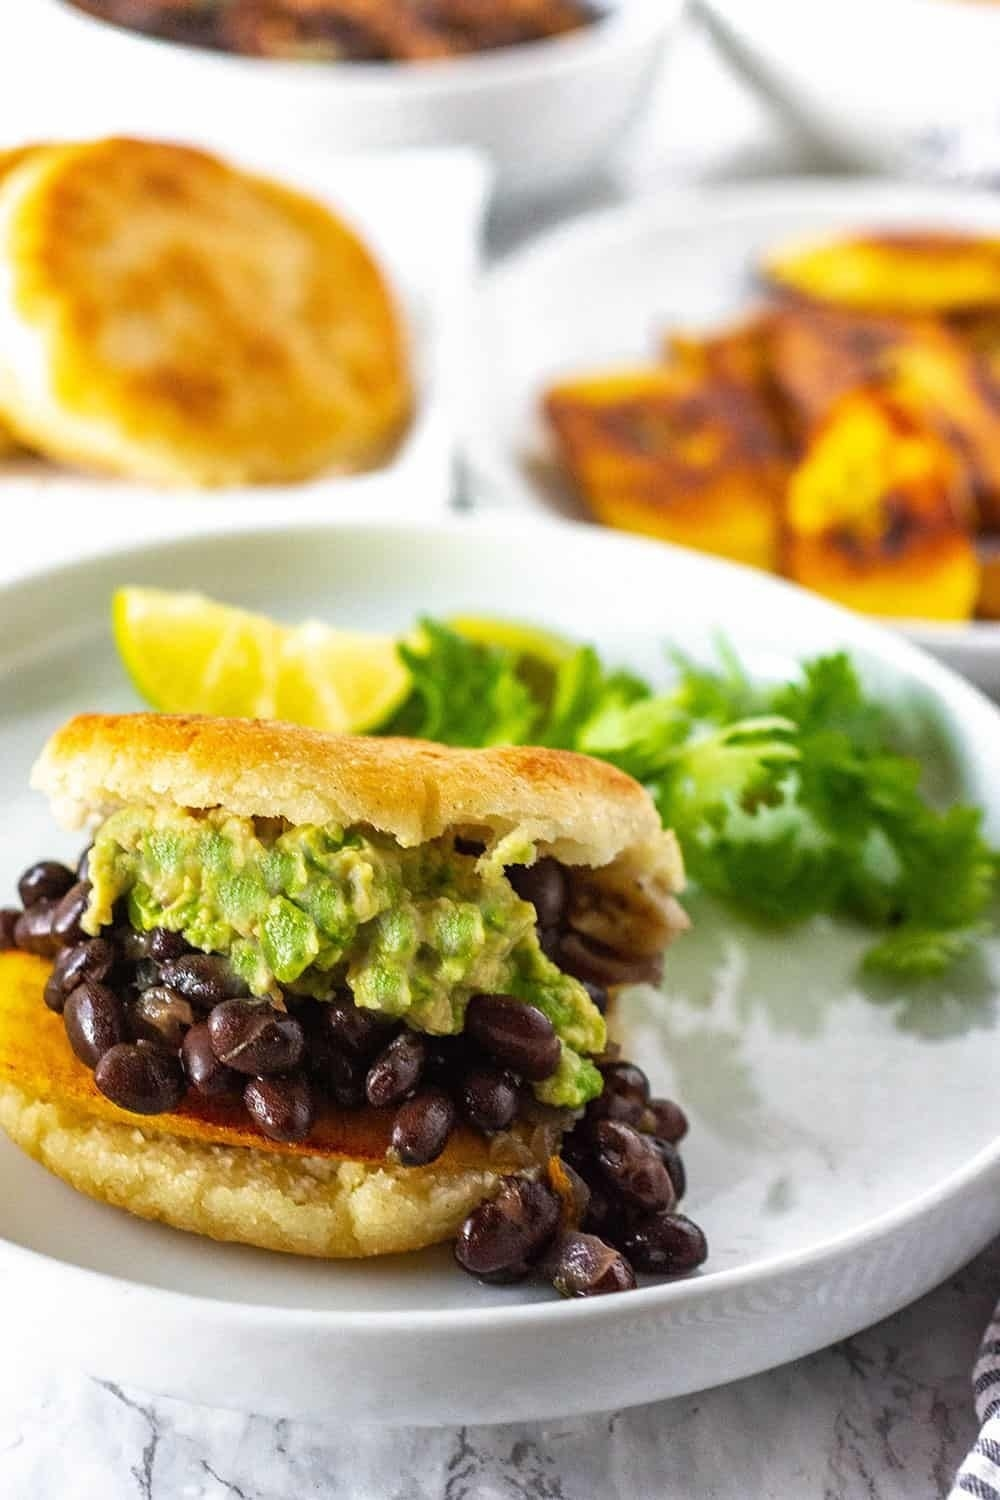 An arepa filled with beans and avocado.